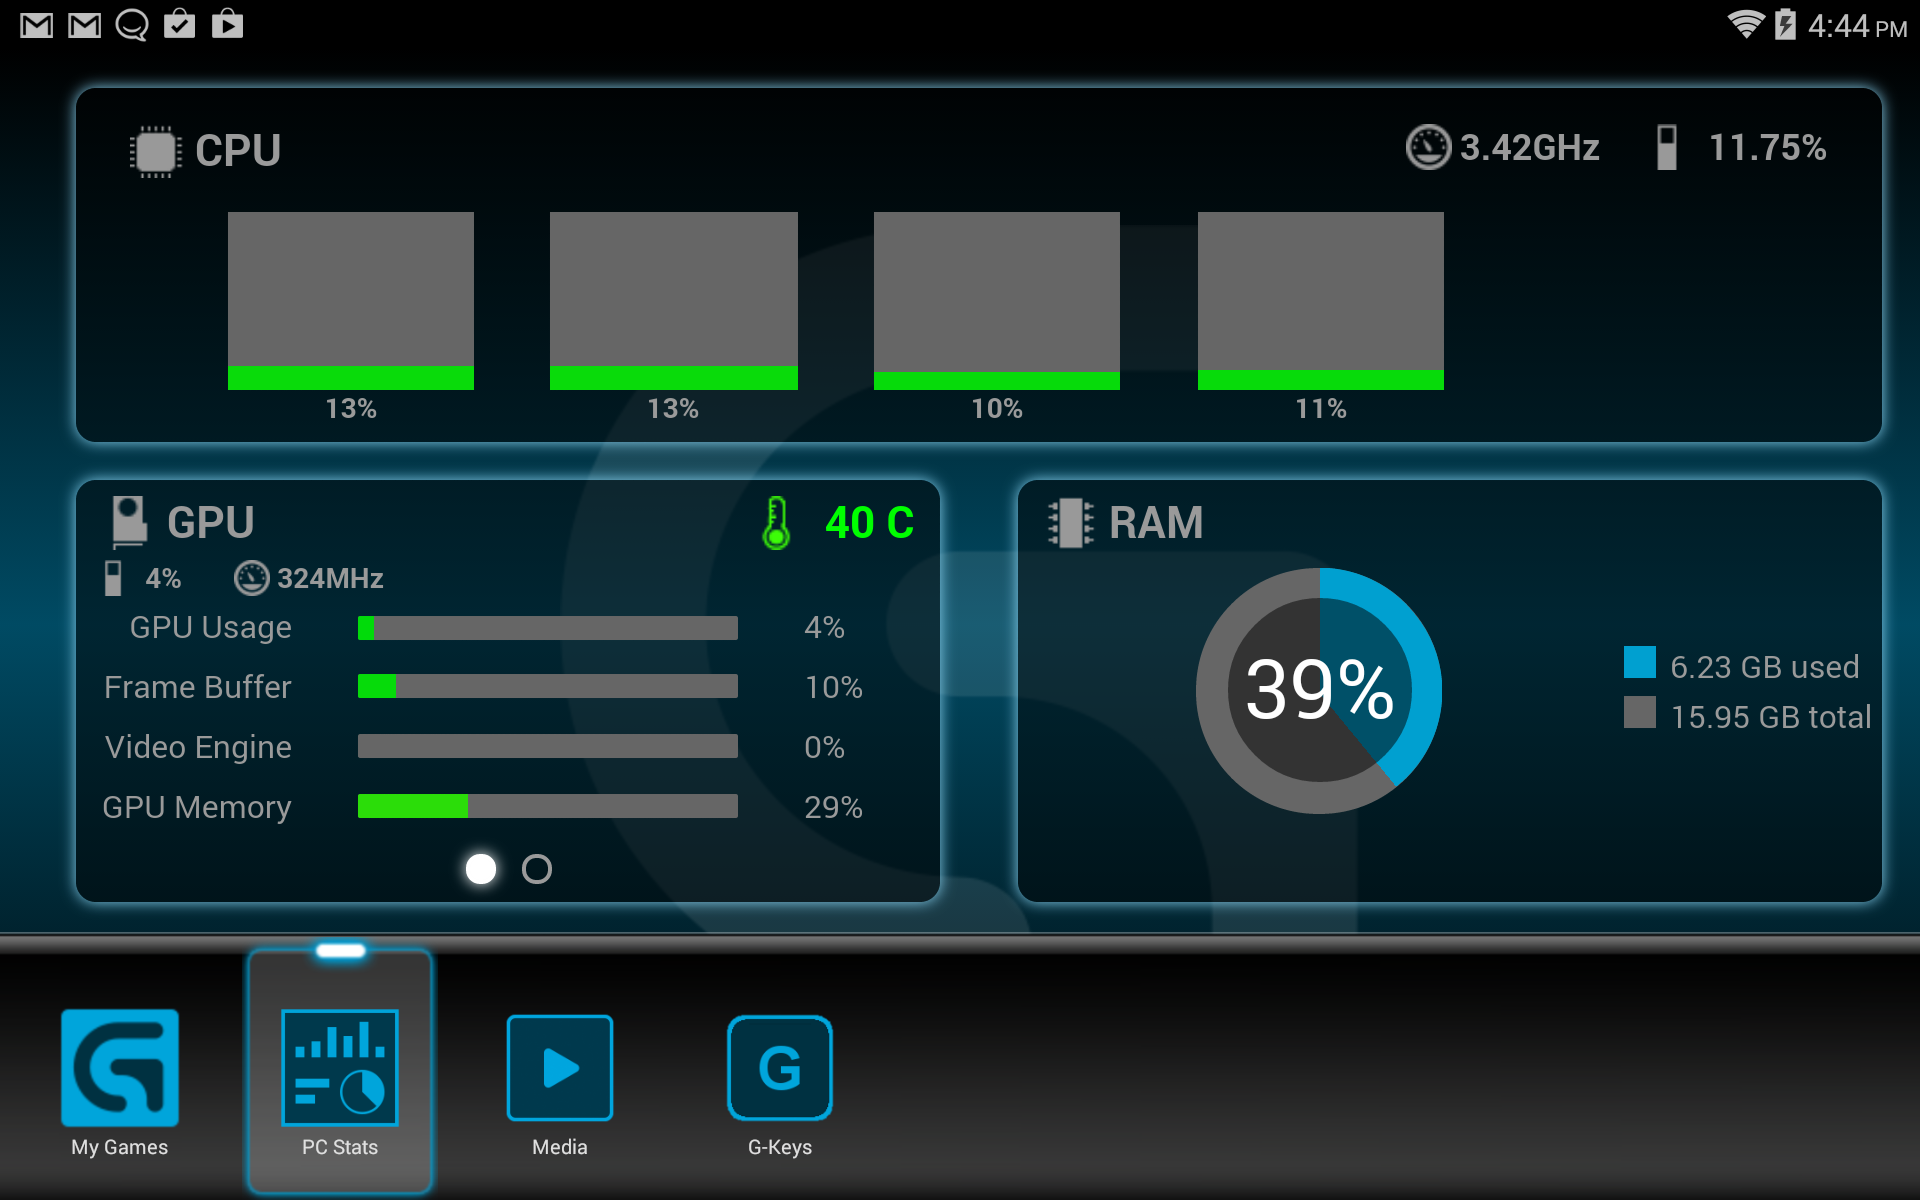 Logitech's Arx Control App Lets You See Your Gaming PC's Performance